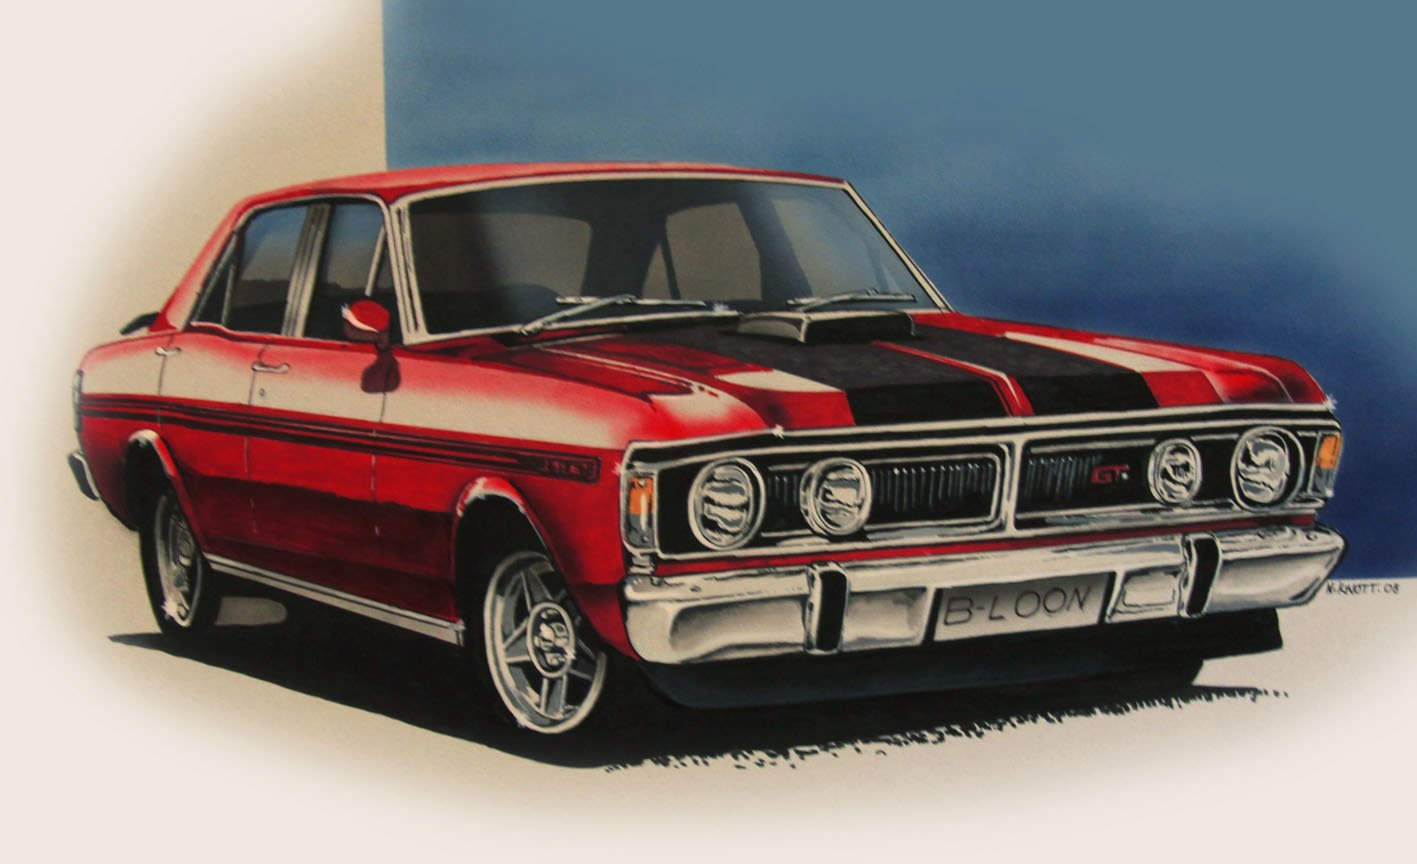 Hd Wallpaper Background Image Id X Vehicles Xy Ford Falcon Phase Iii Gtho